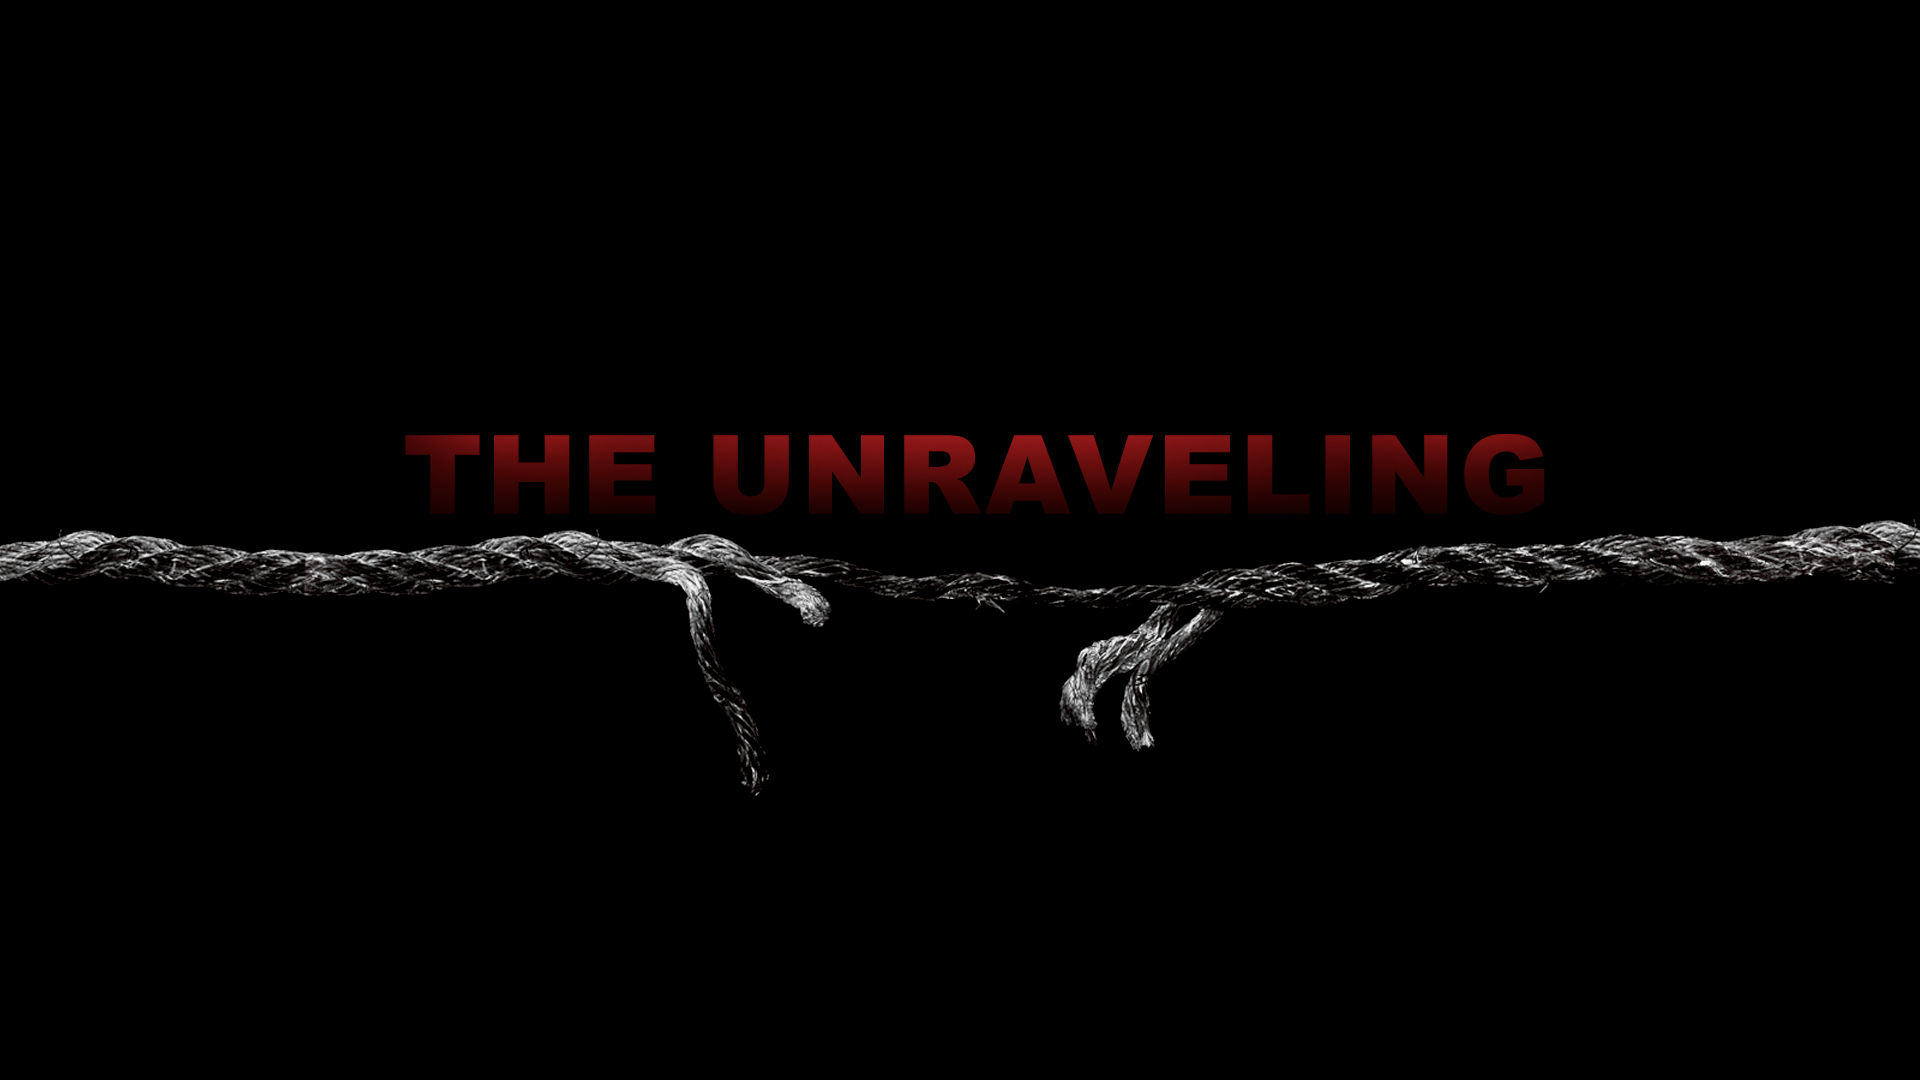 The Unraveling 15:  The Devil Moves In Crowds